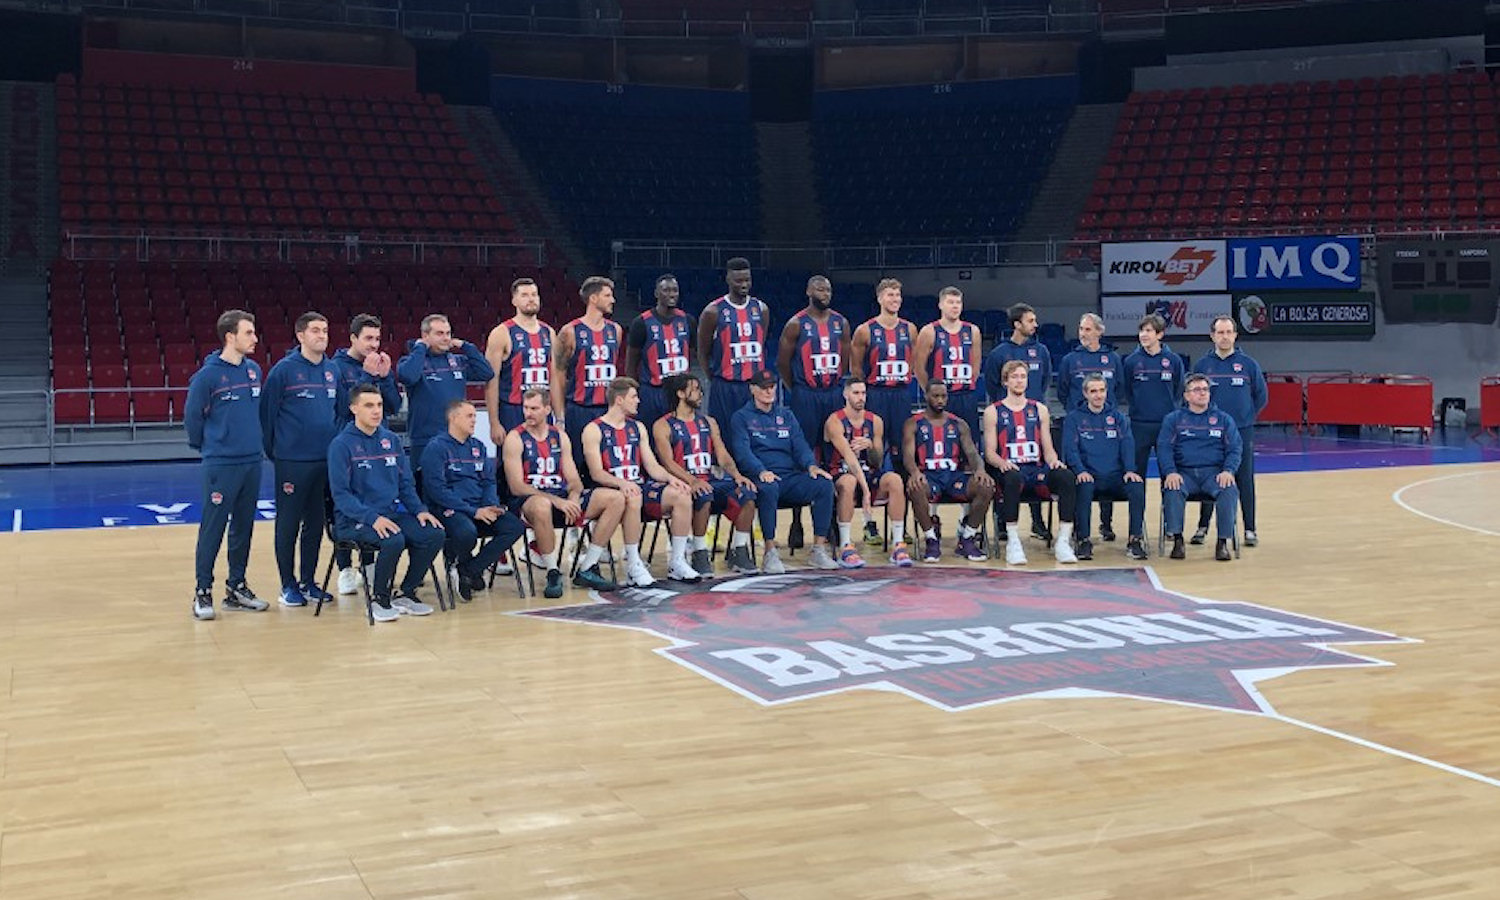 TD Systems Baskonia Vitoria-Gasteiz 2 Media Day 2020 - EB20